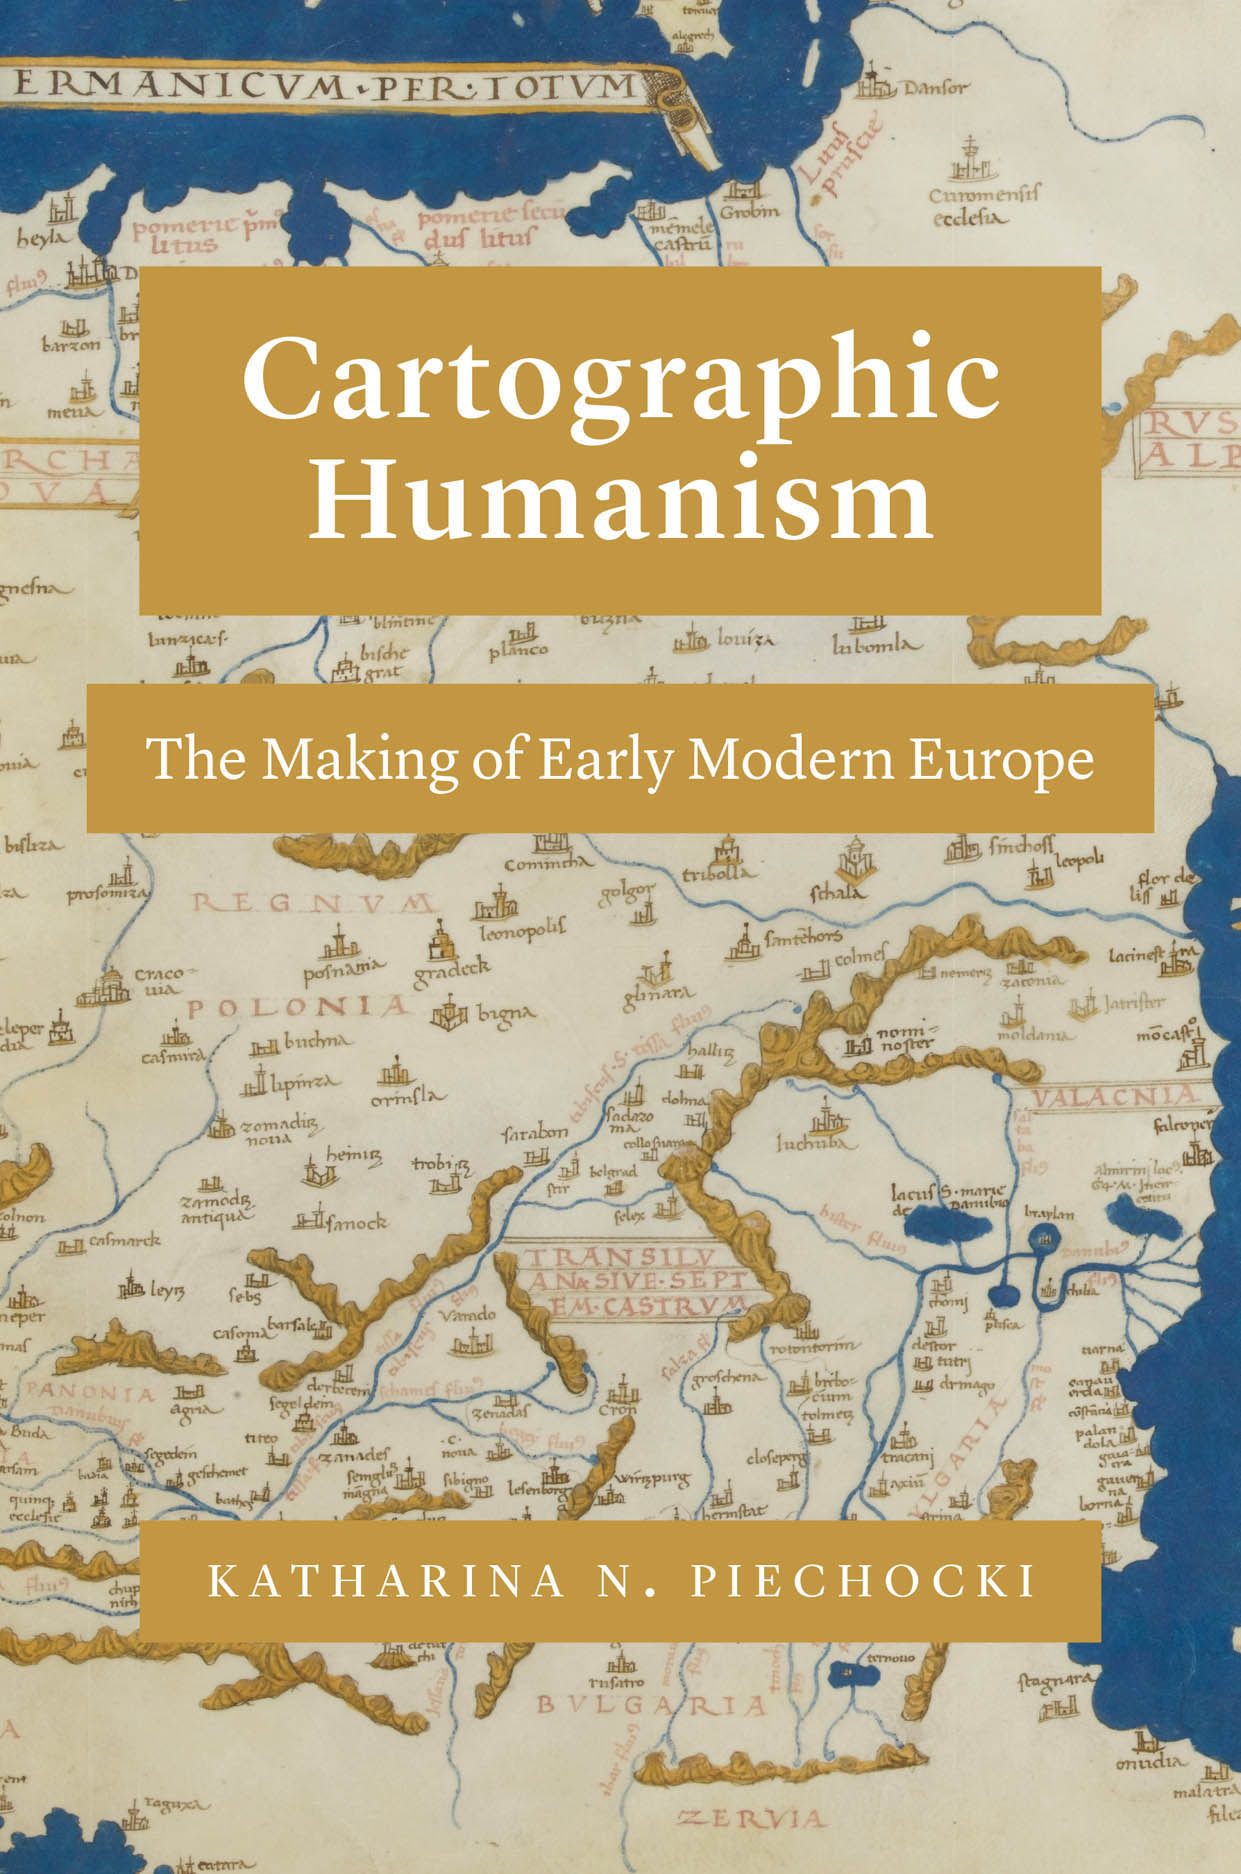 Cartographic Humanism